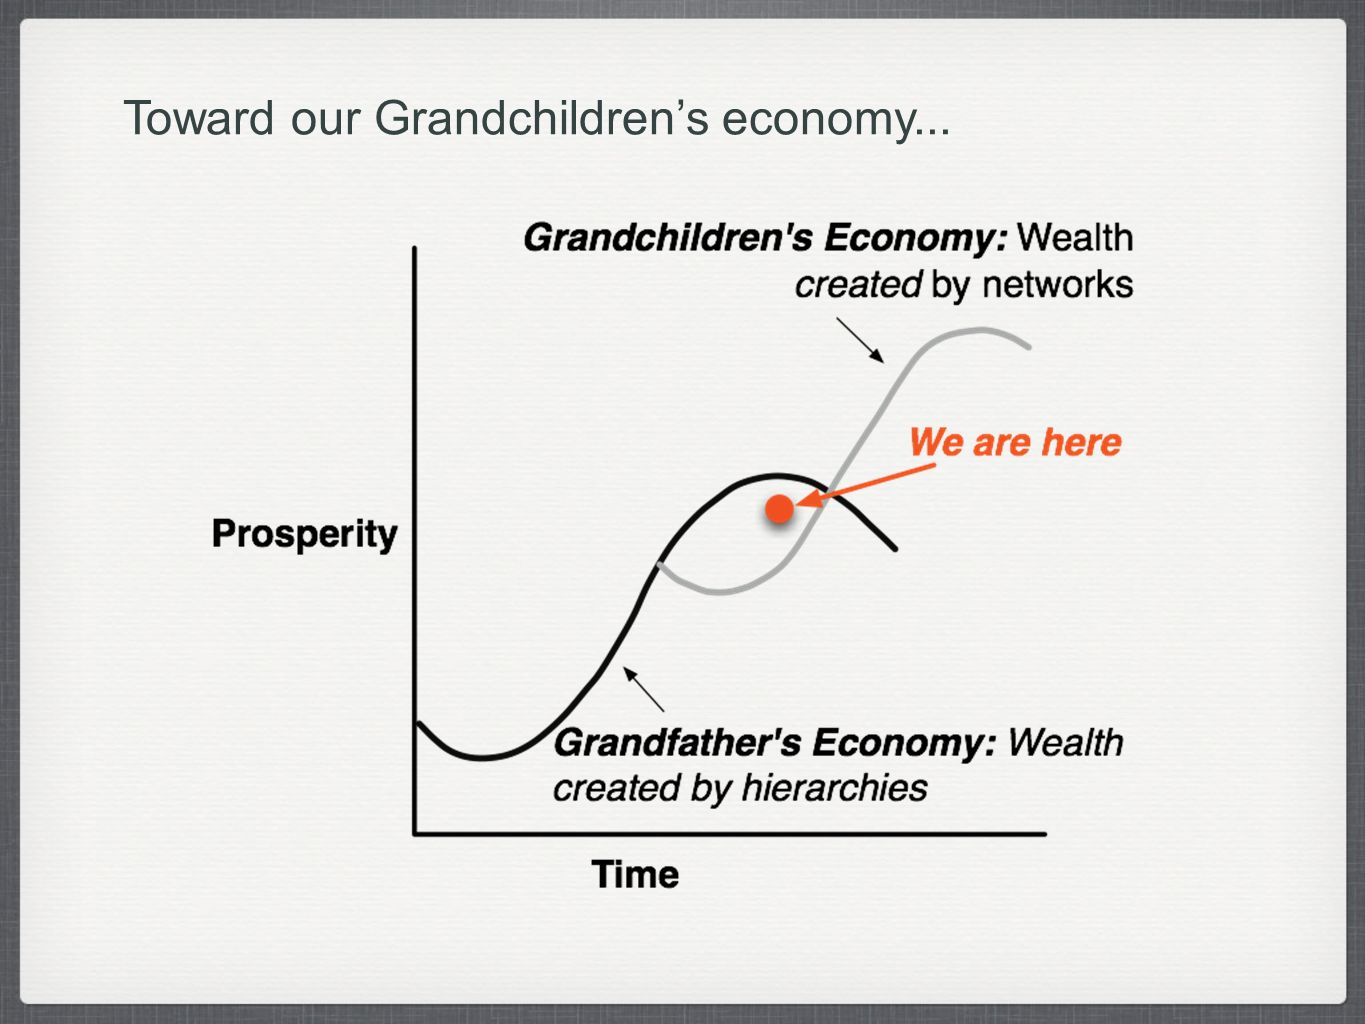 Toward our Grandchildrens economy...